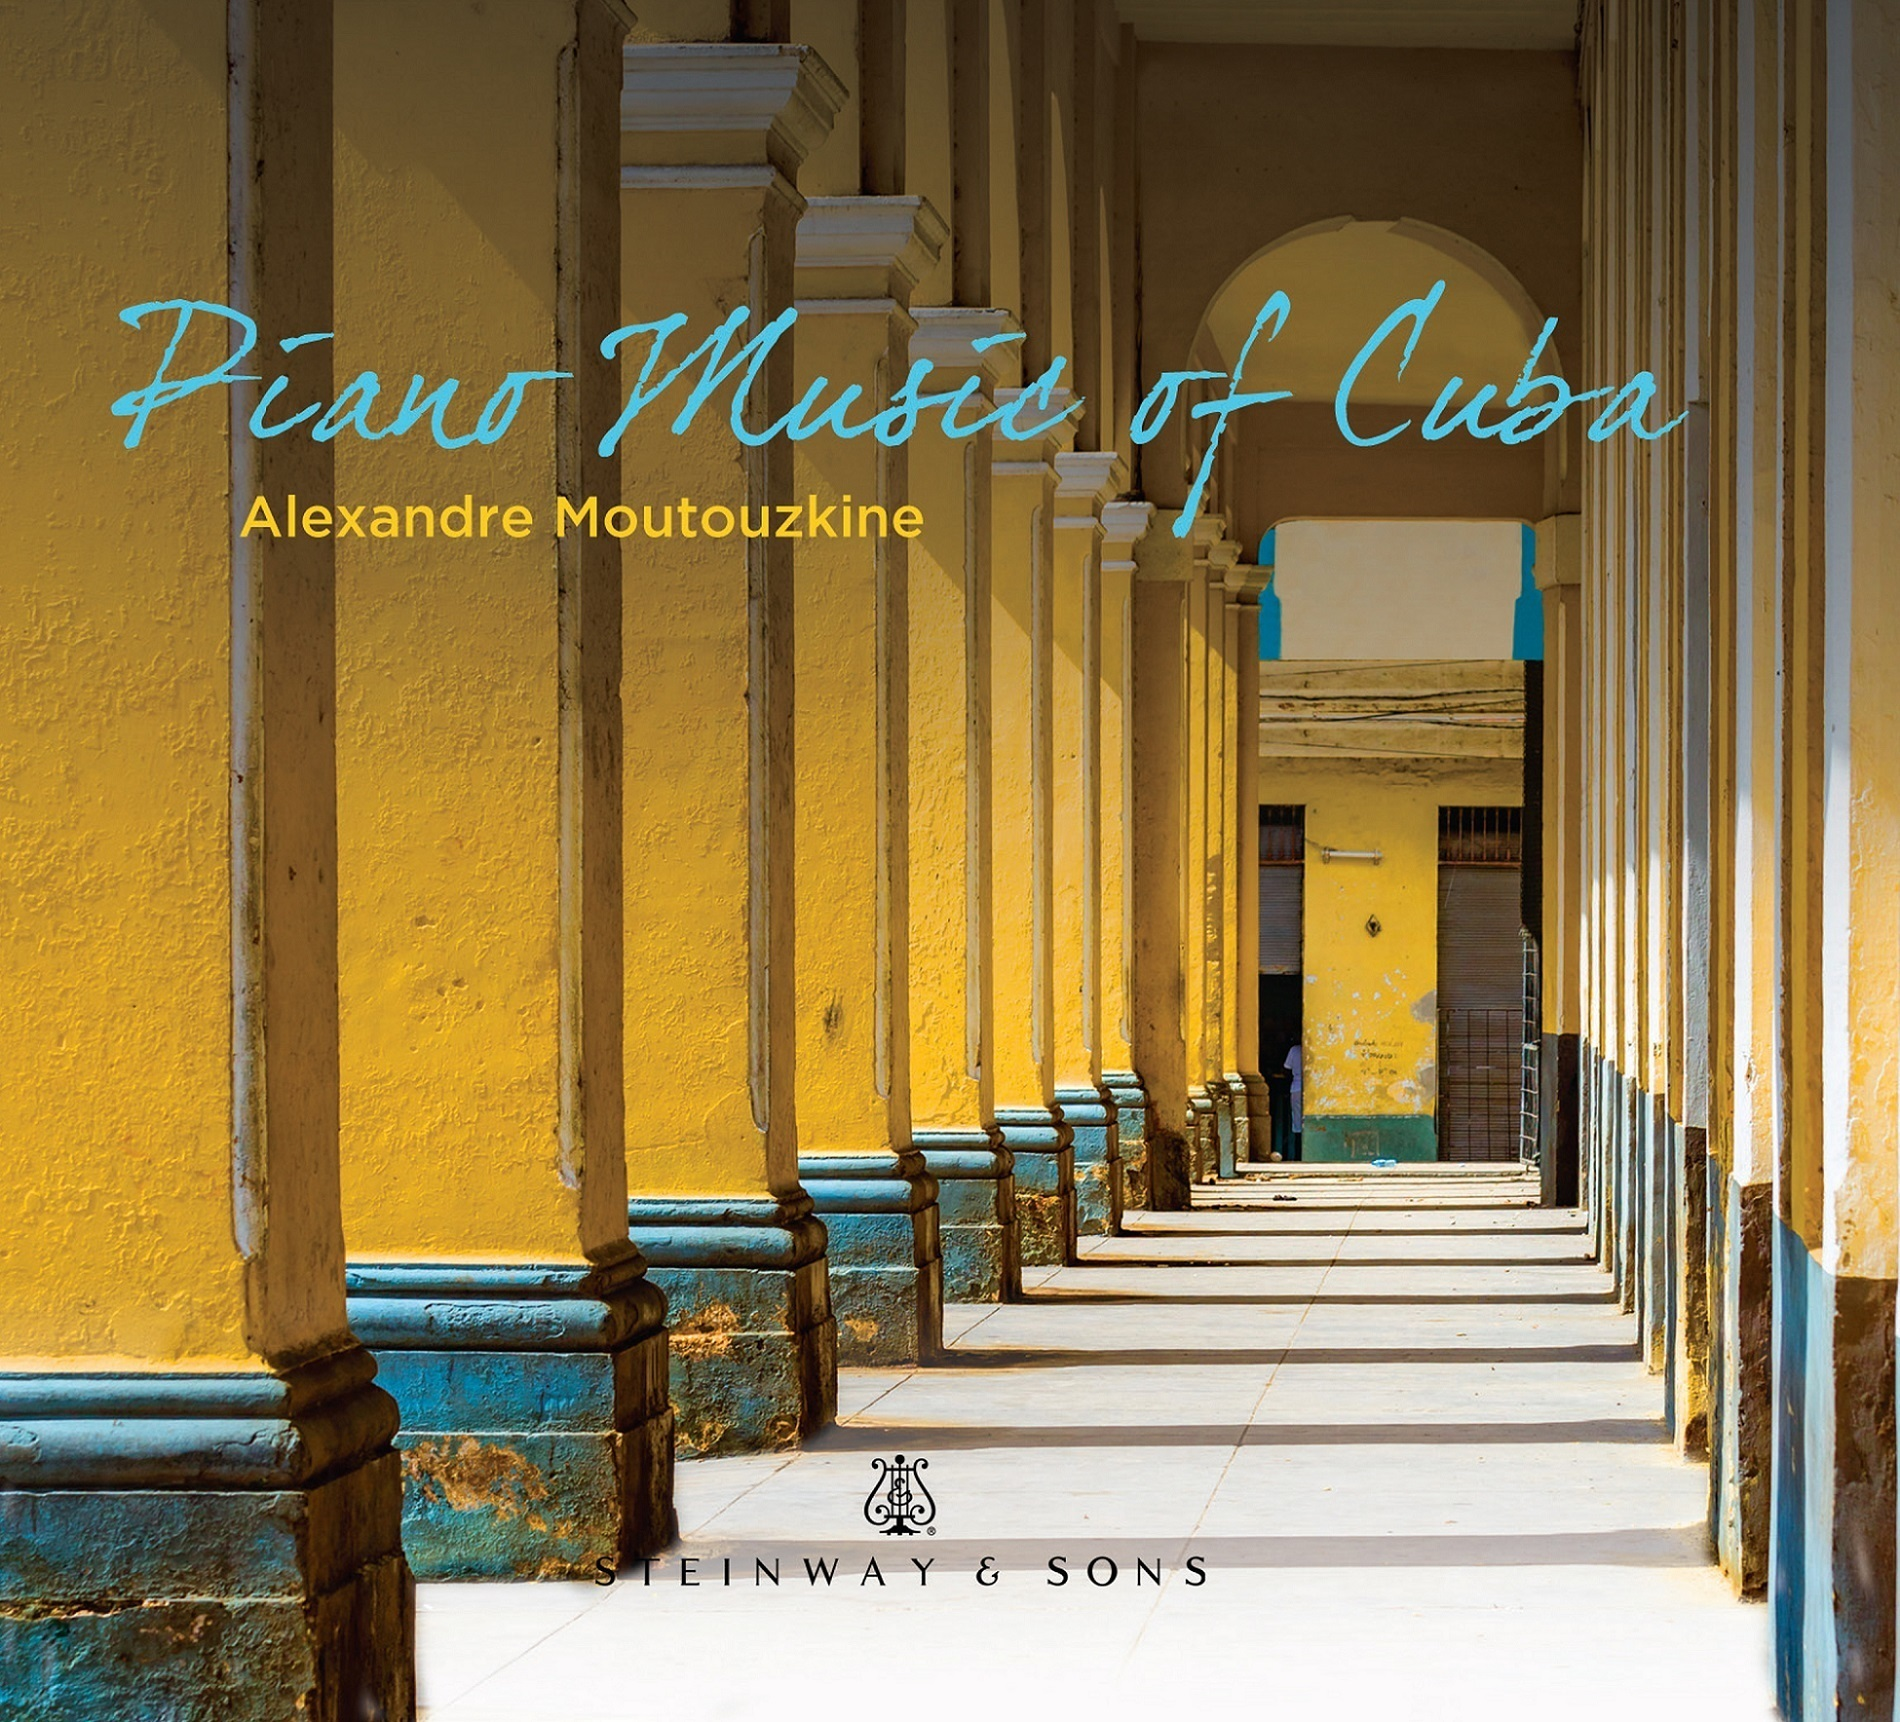 Cuban Piano Music / Alexandre Moutouzkine